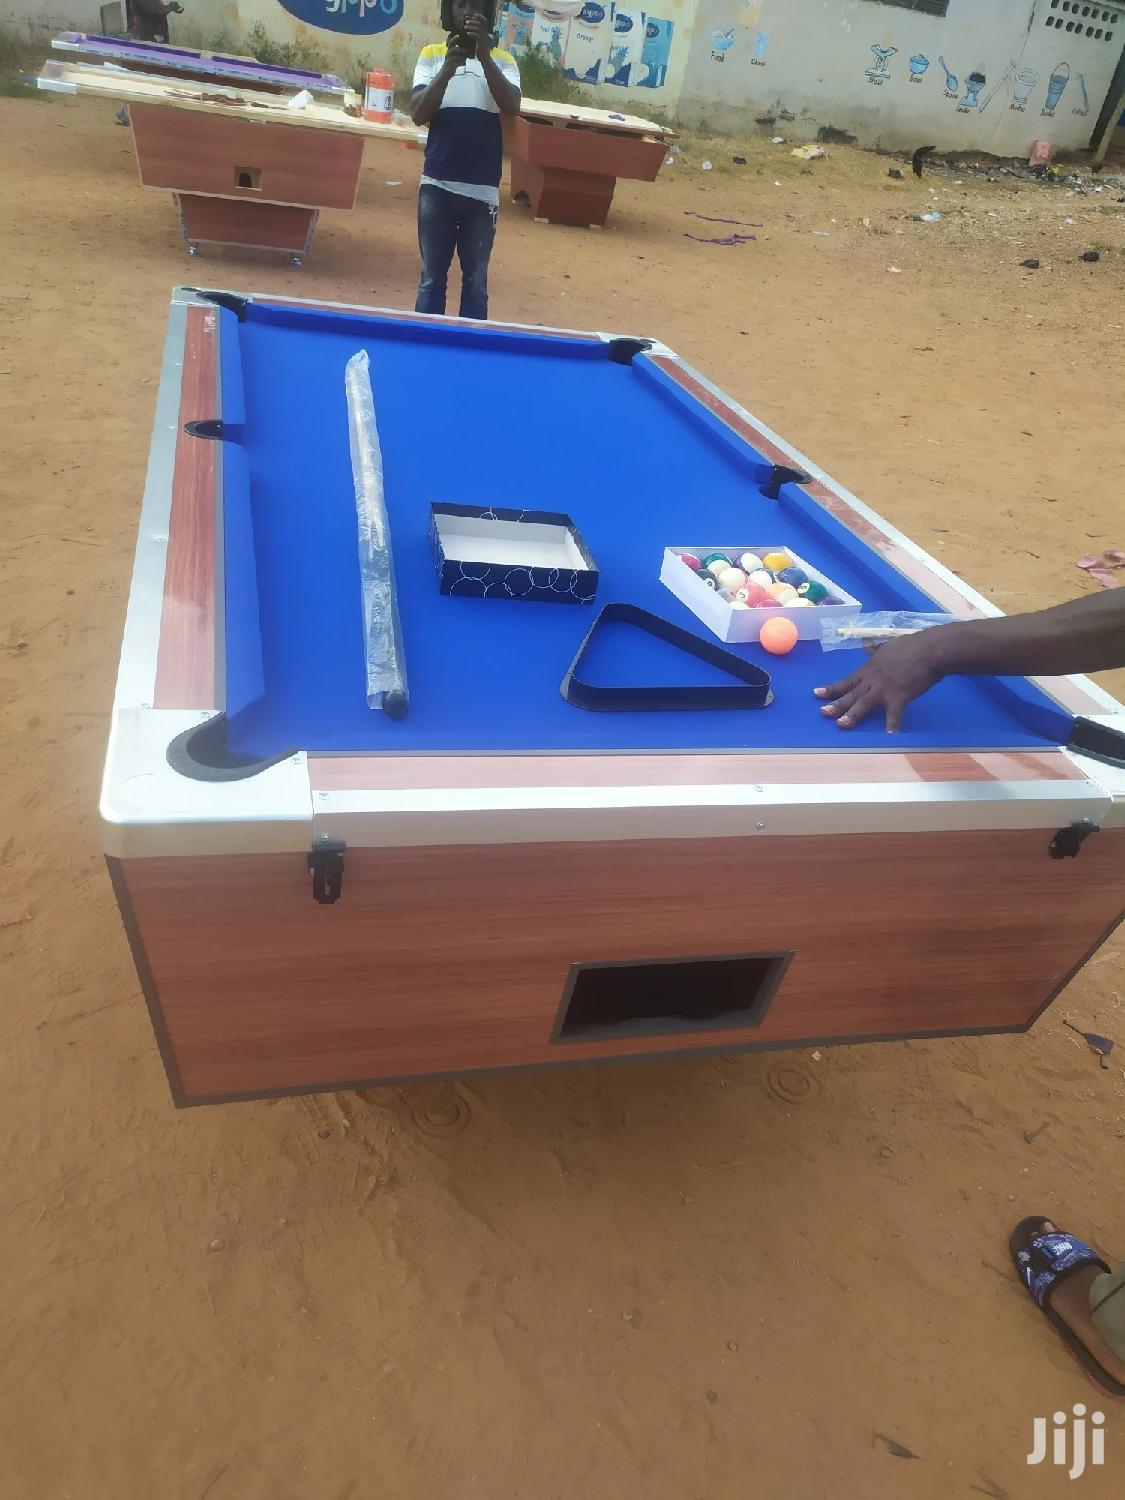 Coin Operating Snooker 🎱 Board Machine